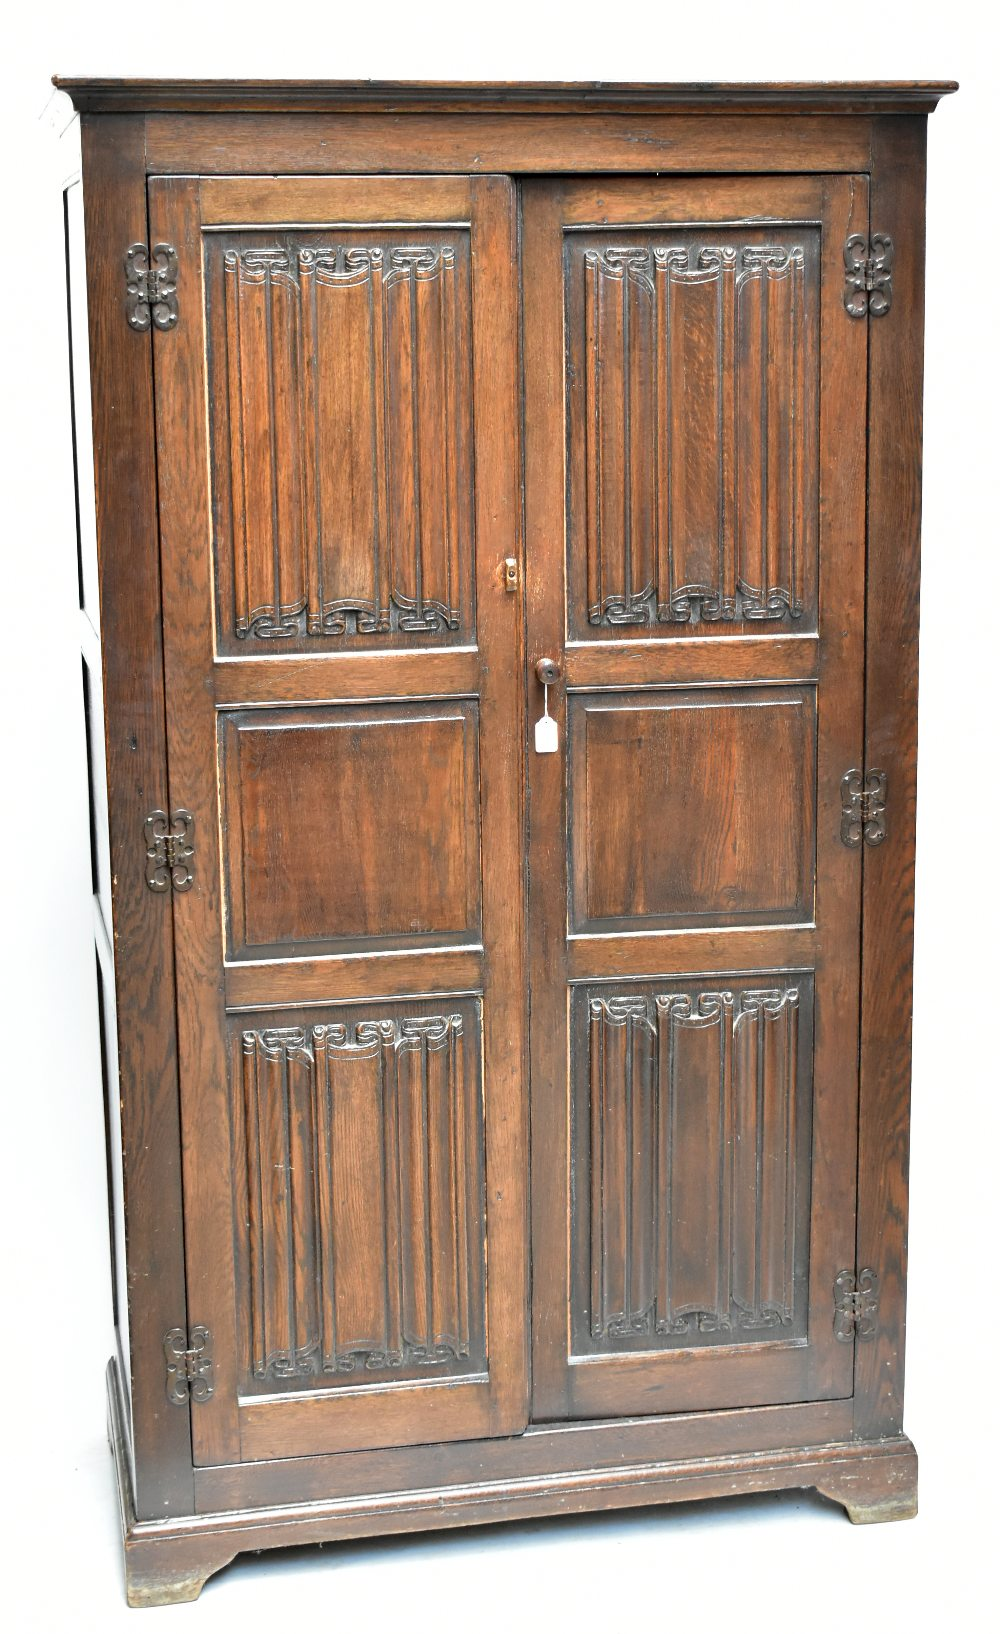 An early 20th century oak wardrobe, the pair of linen fold carved doors enclosing rail, raised on